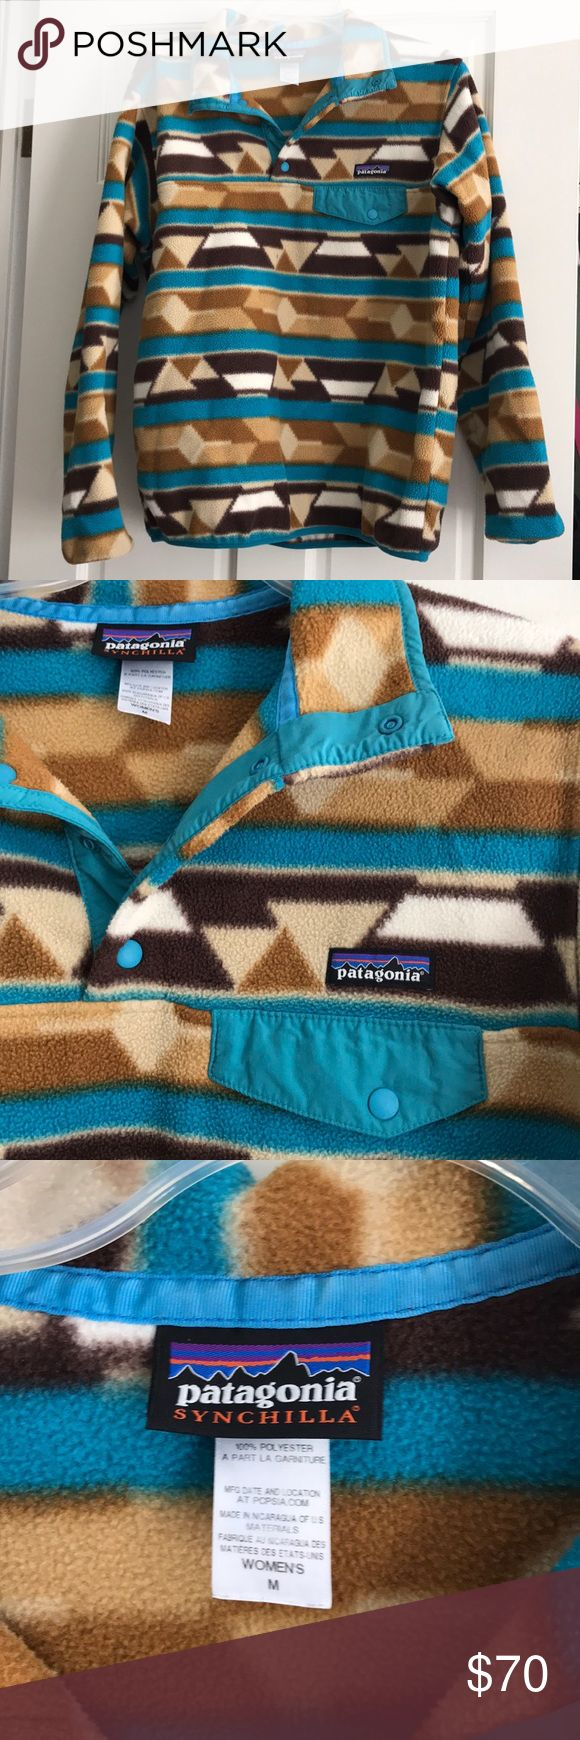 Patagonia Fleece pullover Patagonia fleece pullover. Size M. Great condition. Not rips, stains or tears. Worn a few times. Pet and smoke free home Patagonia Tops Sweatshirts & Hoodies